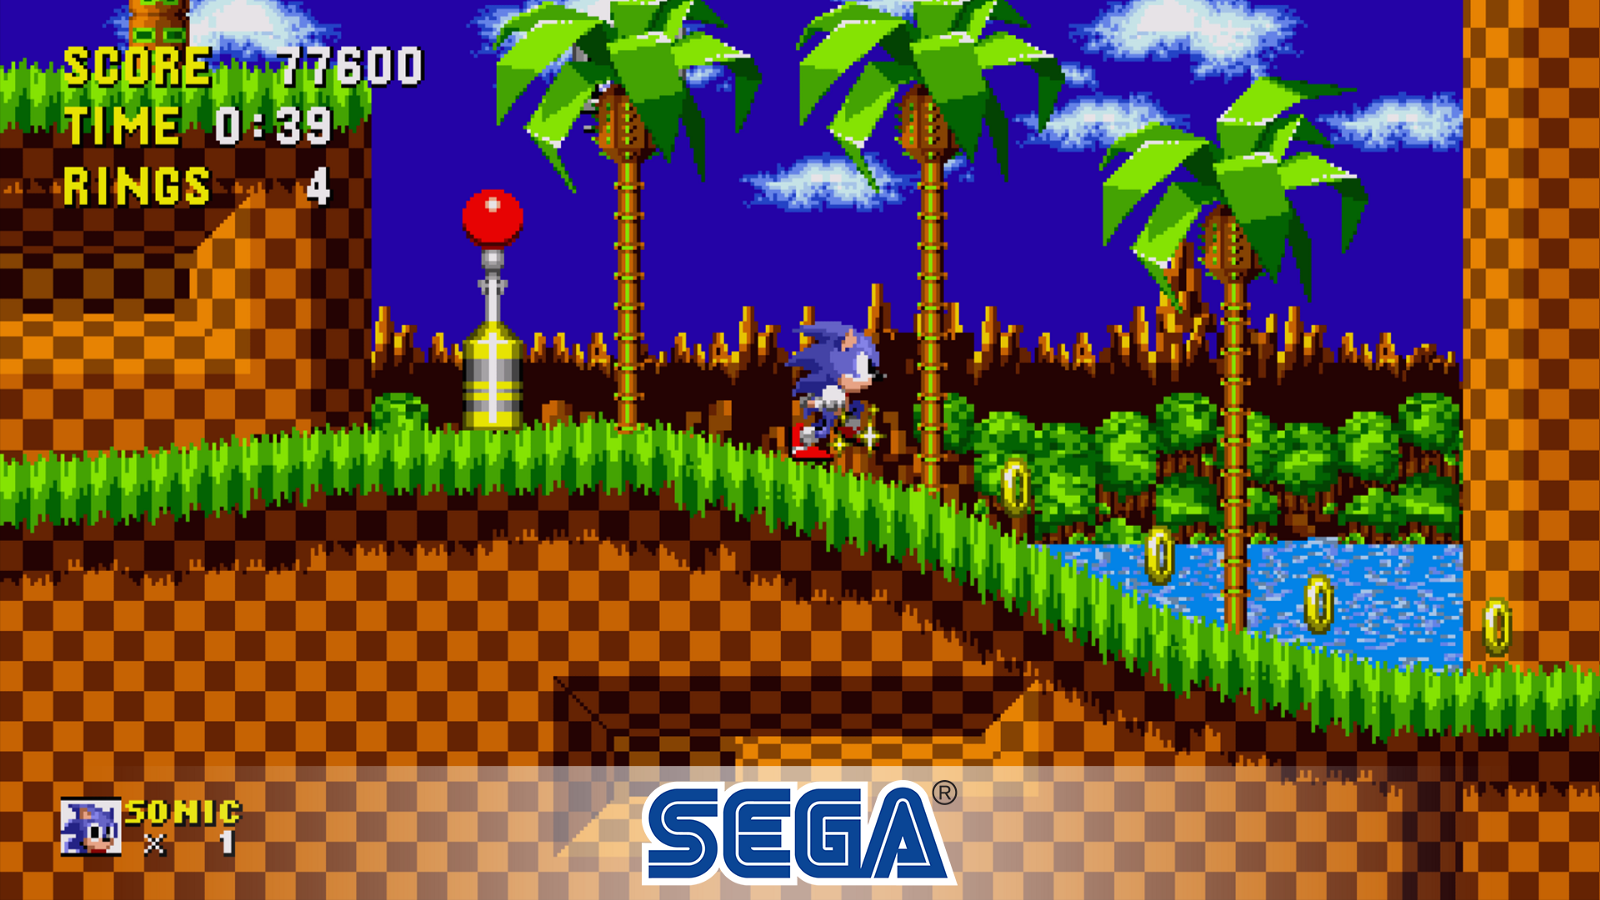 Sonic & Co: Sega-Klassiker auf Amazon Fire TV spielen